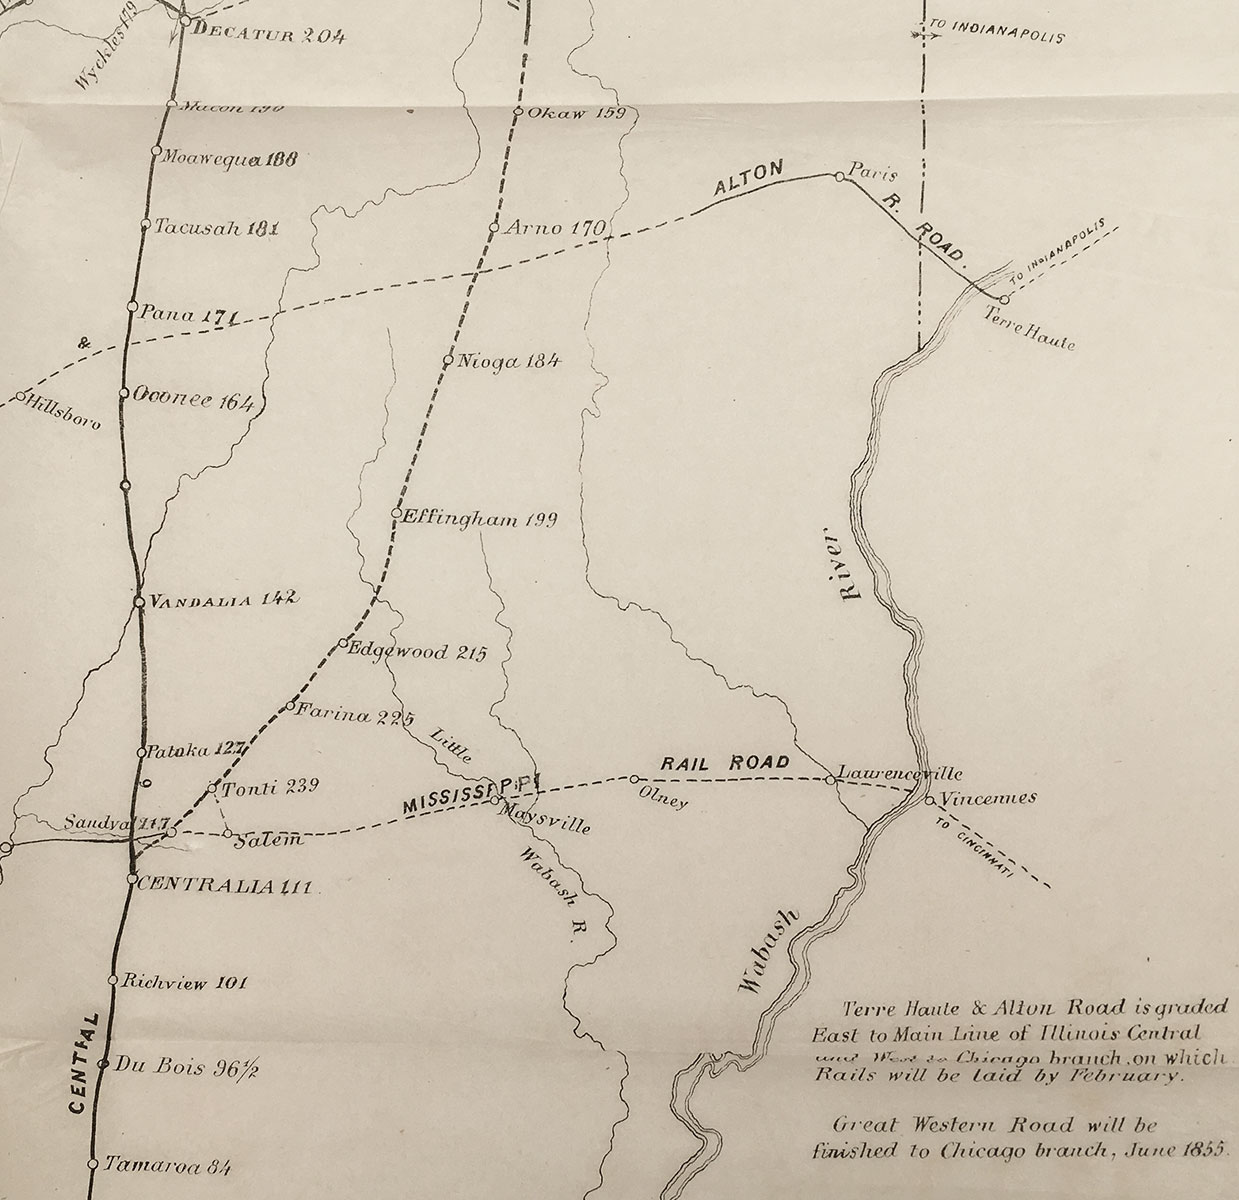 Shortest Route Between Chicago And >> Illinois Central R R Manuscript Cover Title Railway Guide For